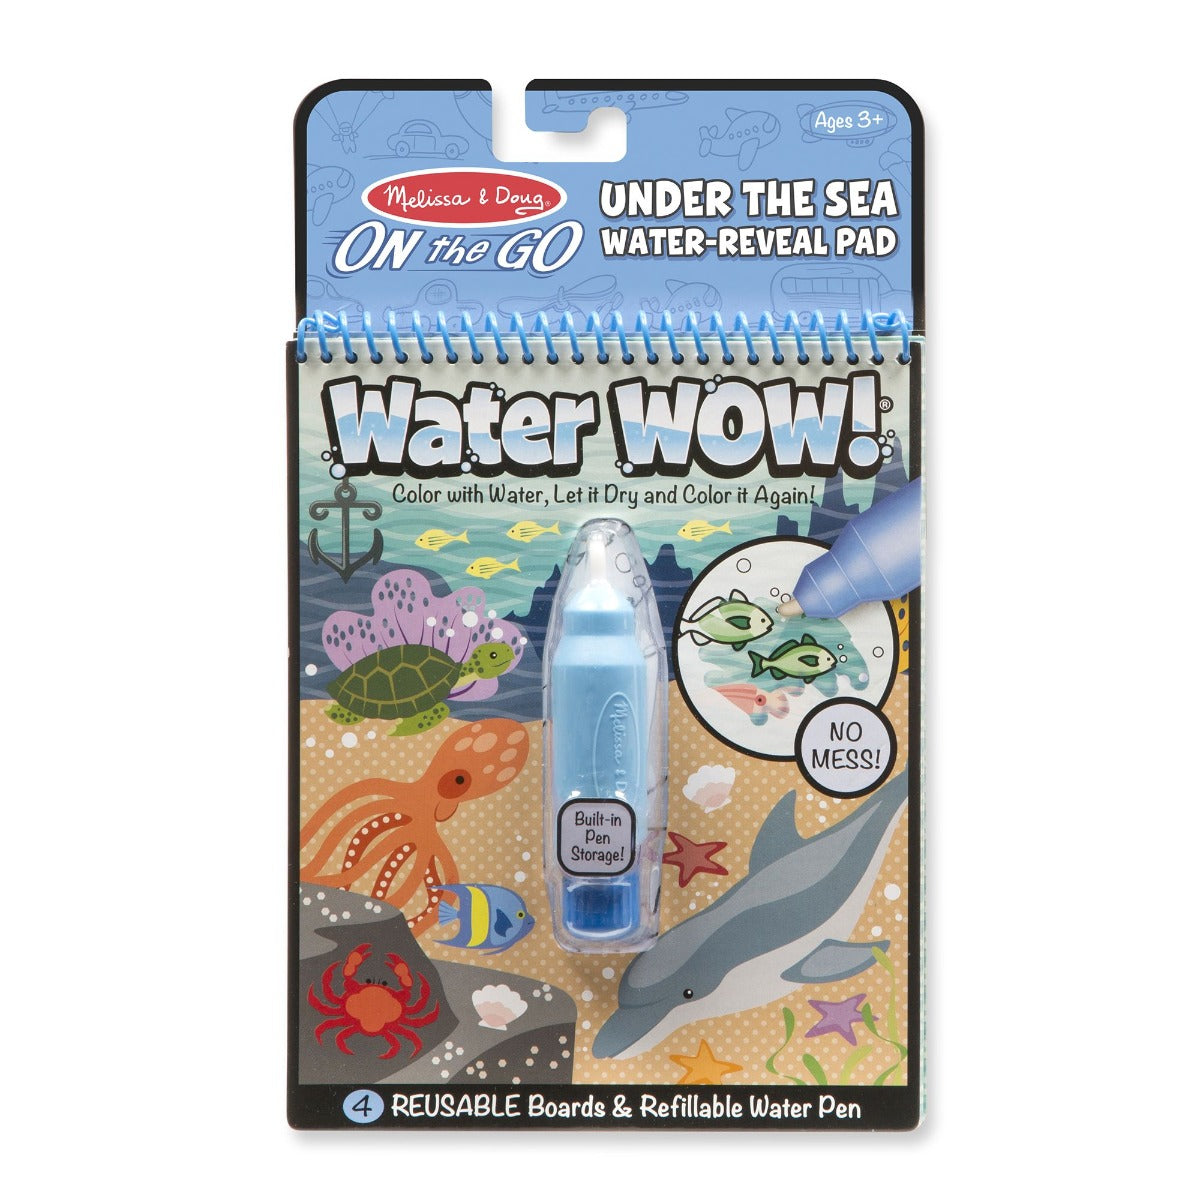 Melissa and Doug On the Go Water Wow! Under the Sea activity pad